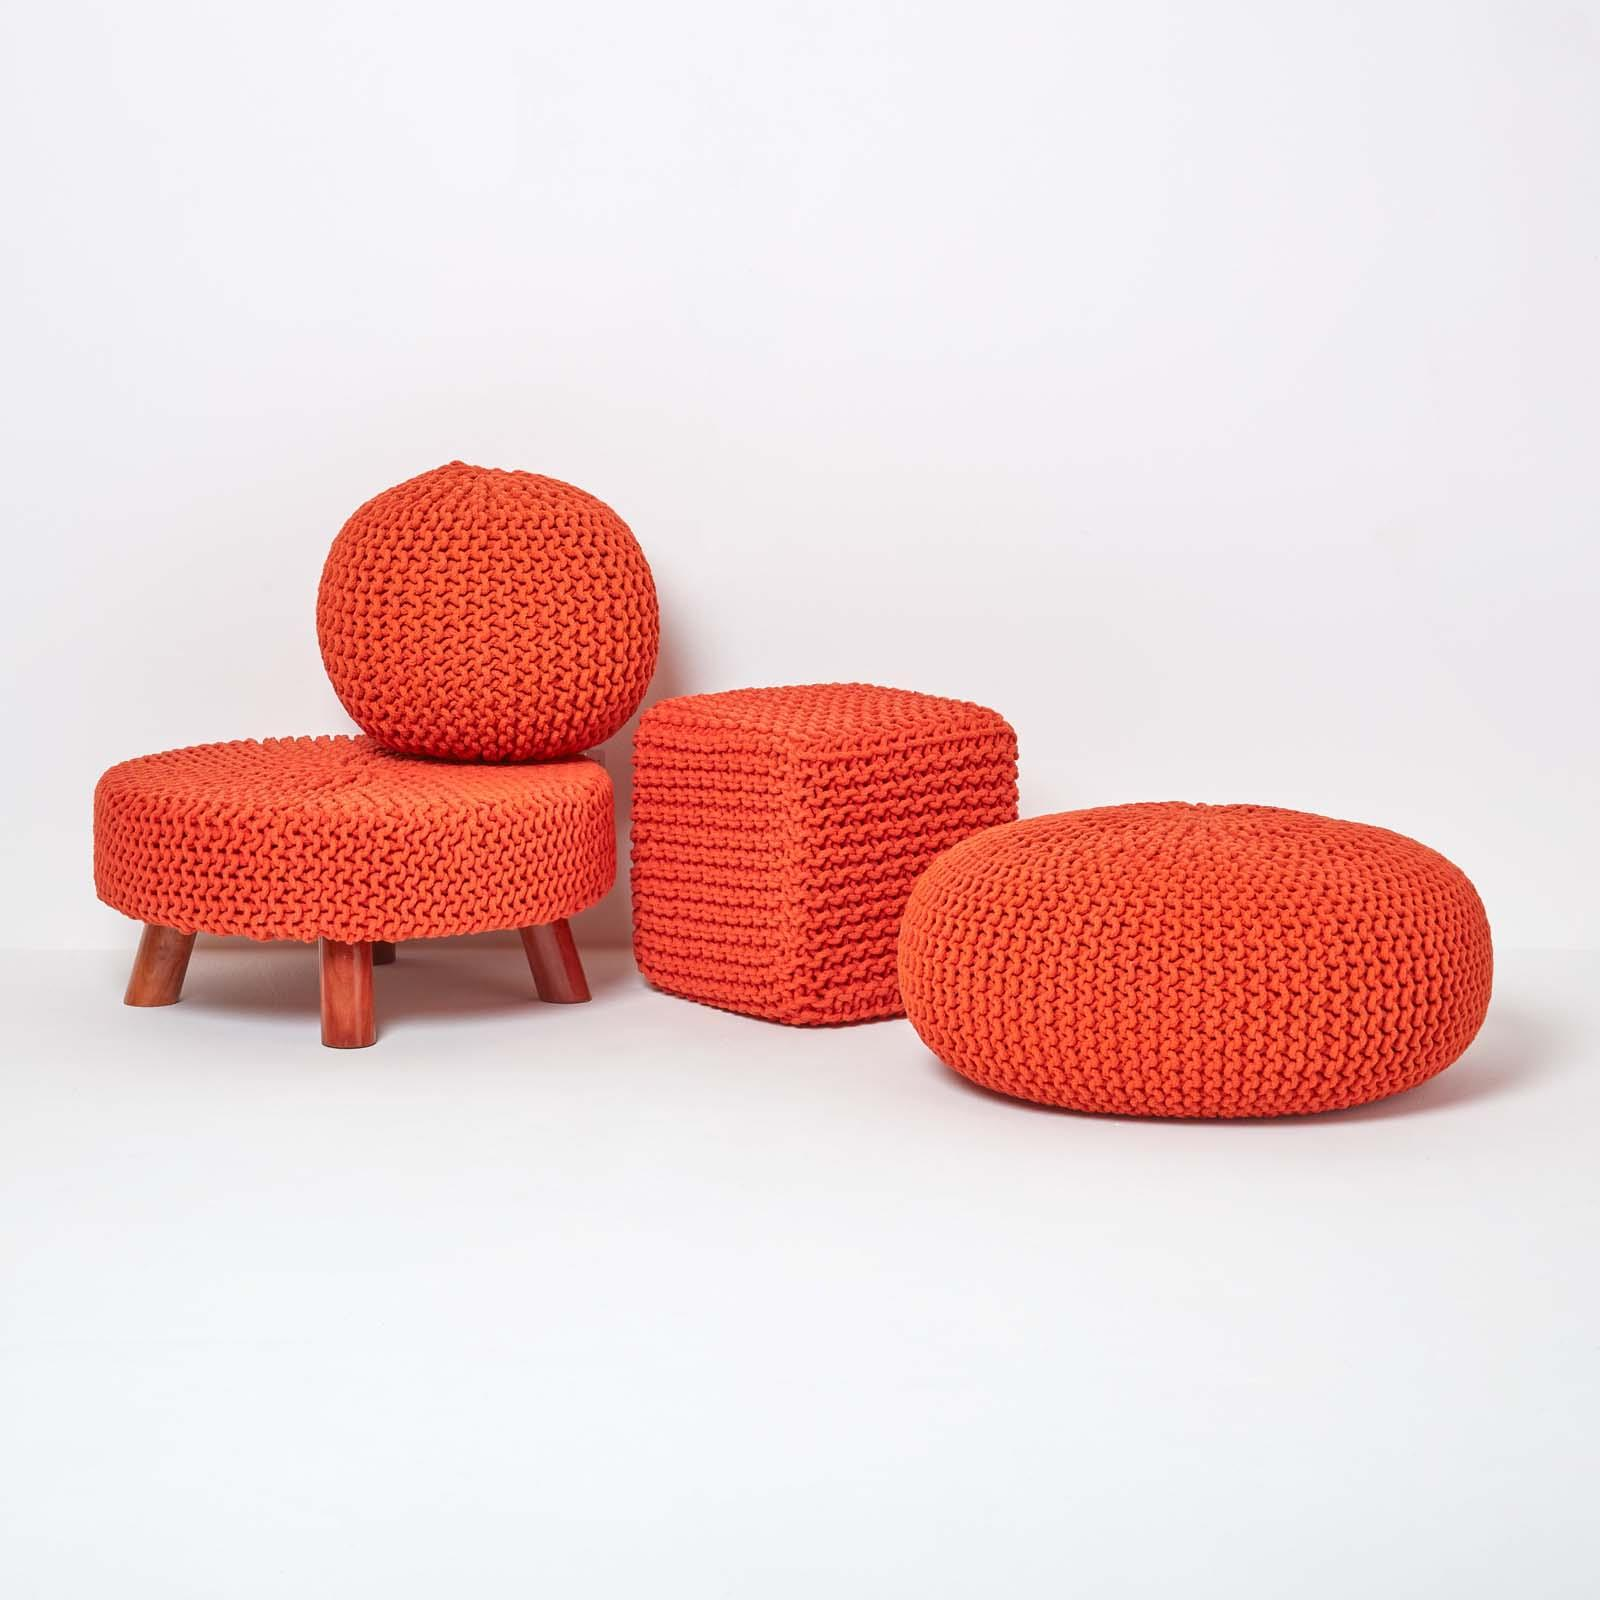 Hand-Knitted-100-Cotton-Pouffes-Round-Sphere-Or-Cube-Square-Chunky-Footstools thumbnail 125